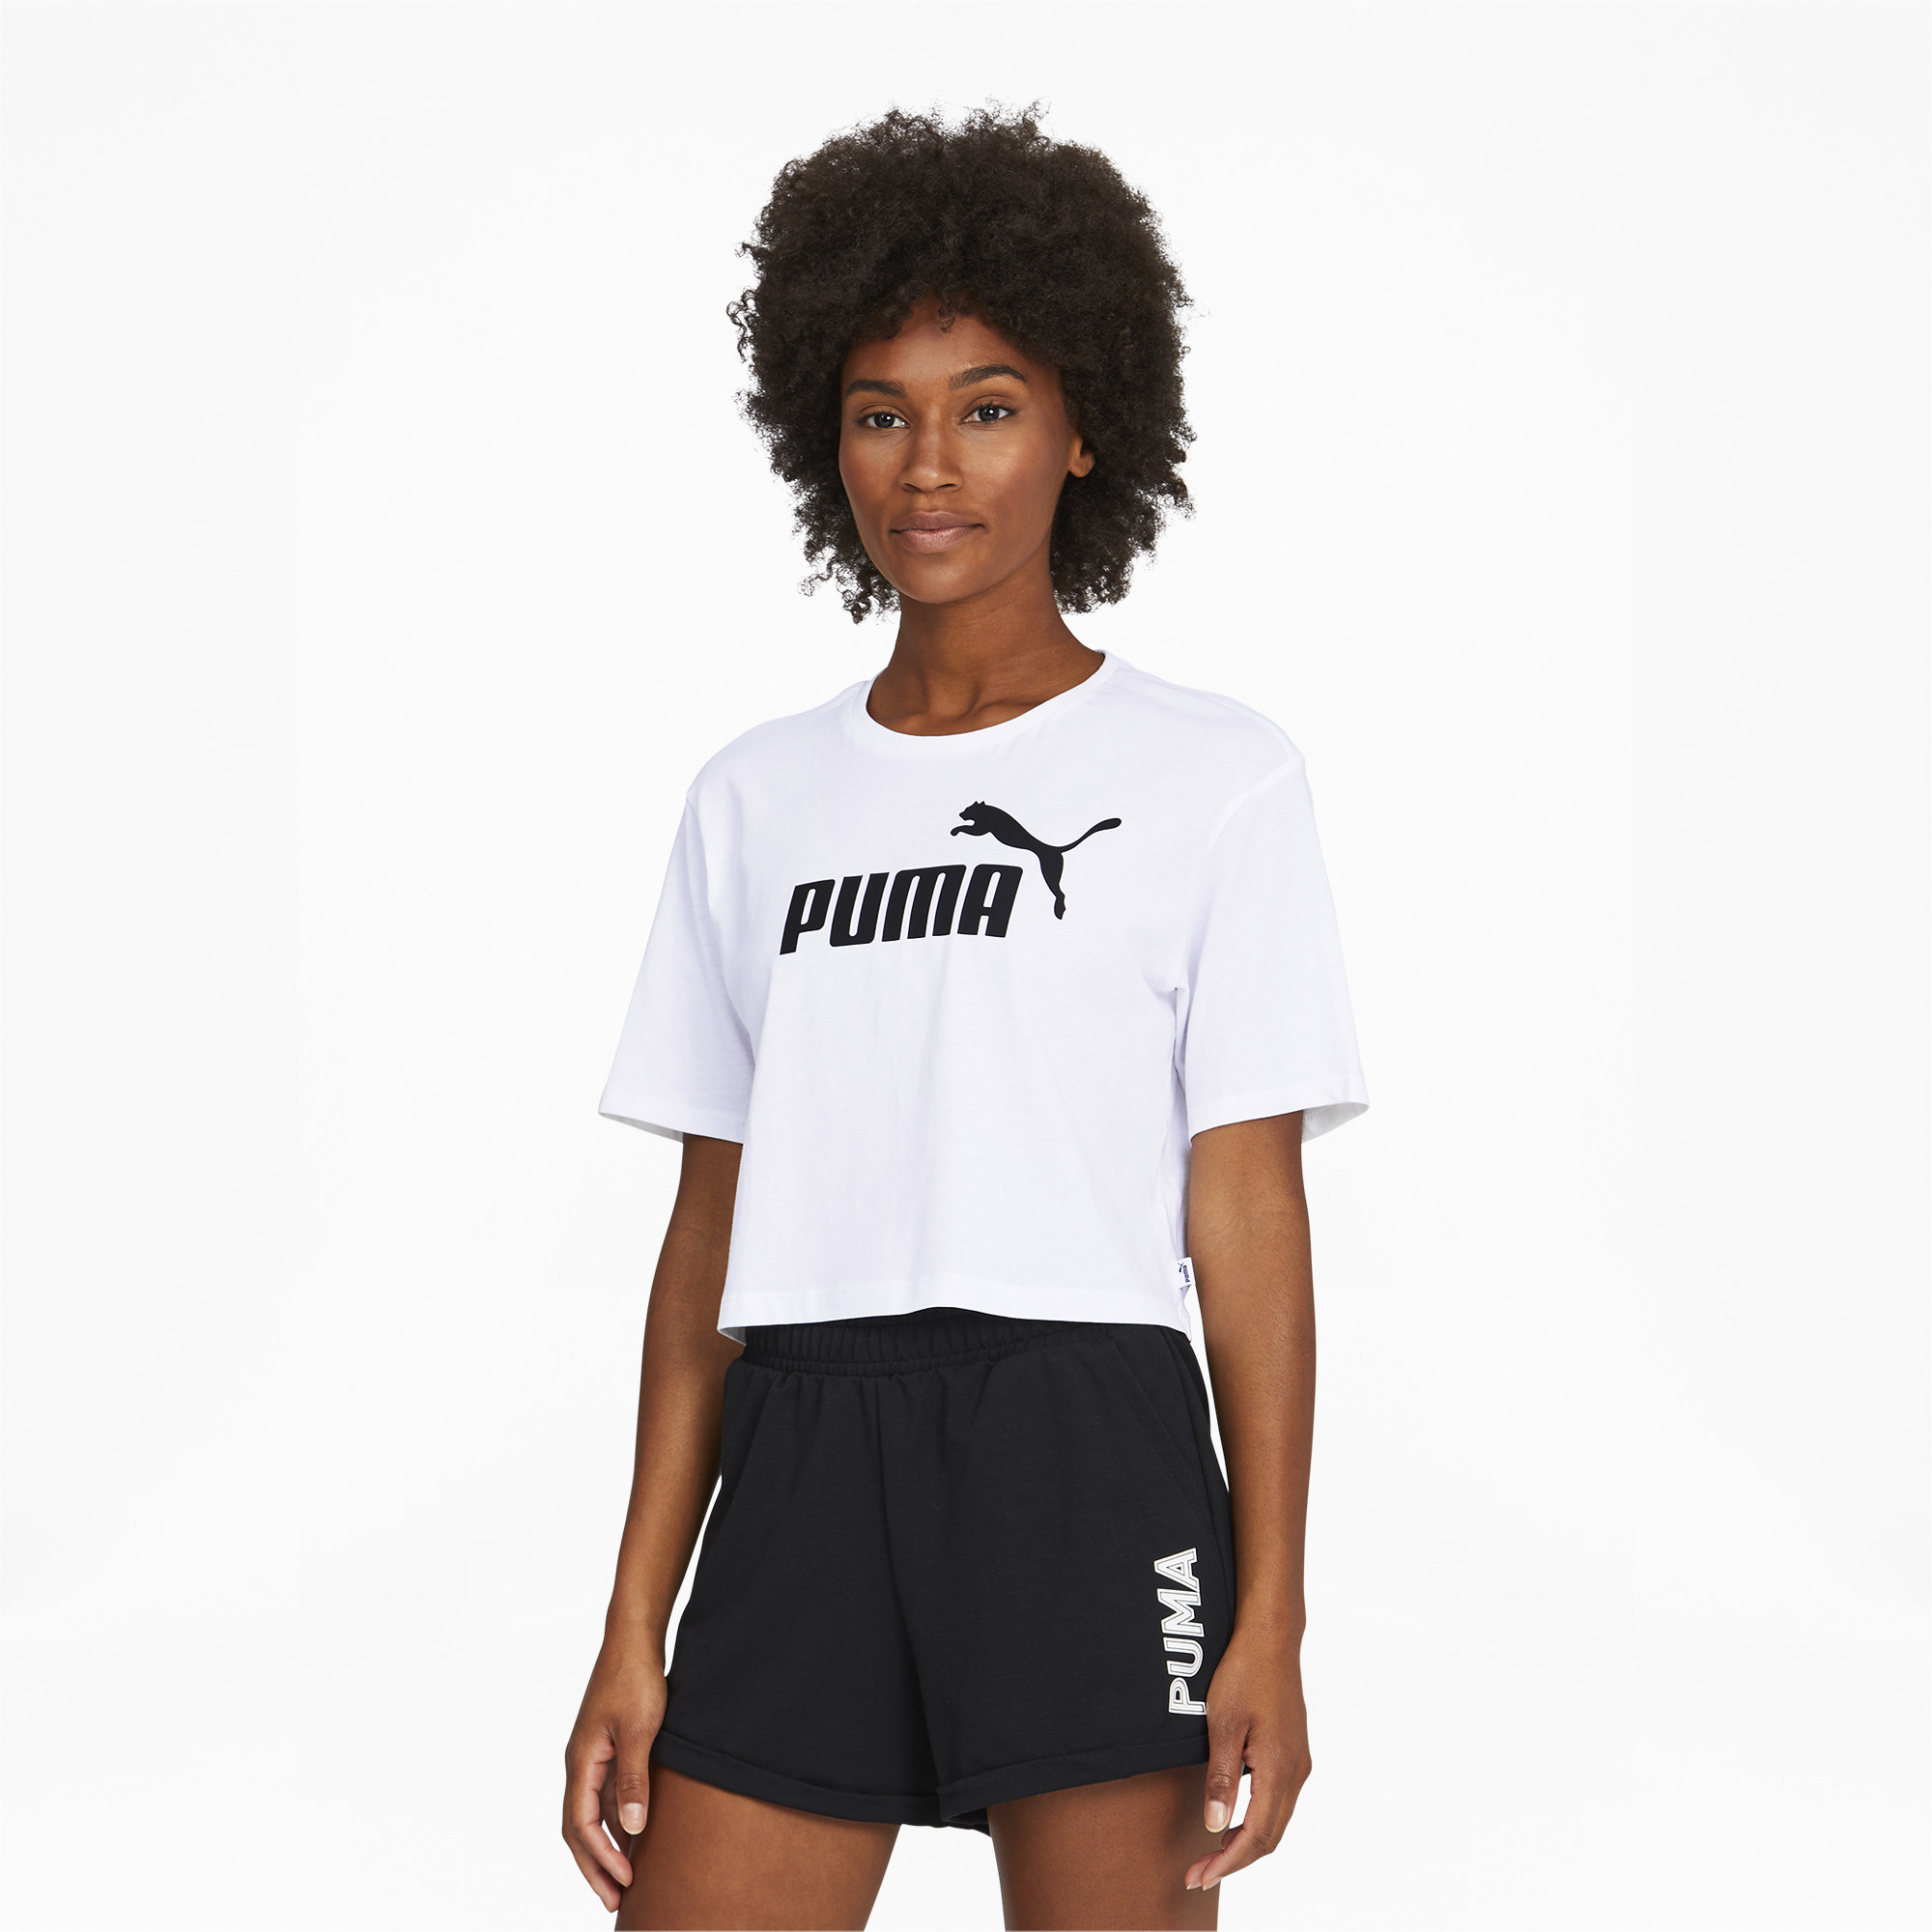 PUMA-Women-039-s-Cropped-Logo-Tee-Women-Crop-Top-Basics thumbnail 7